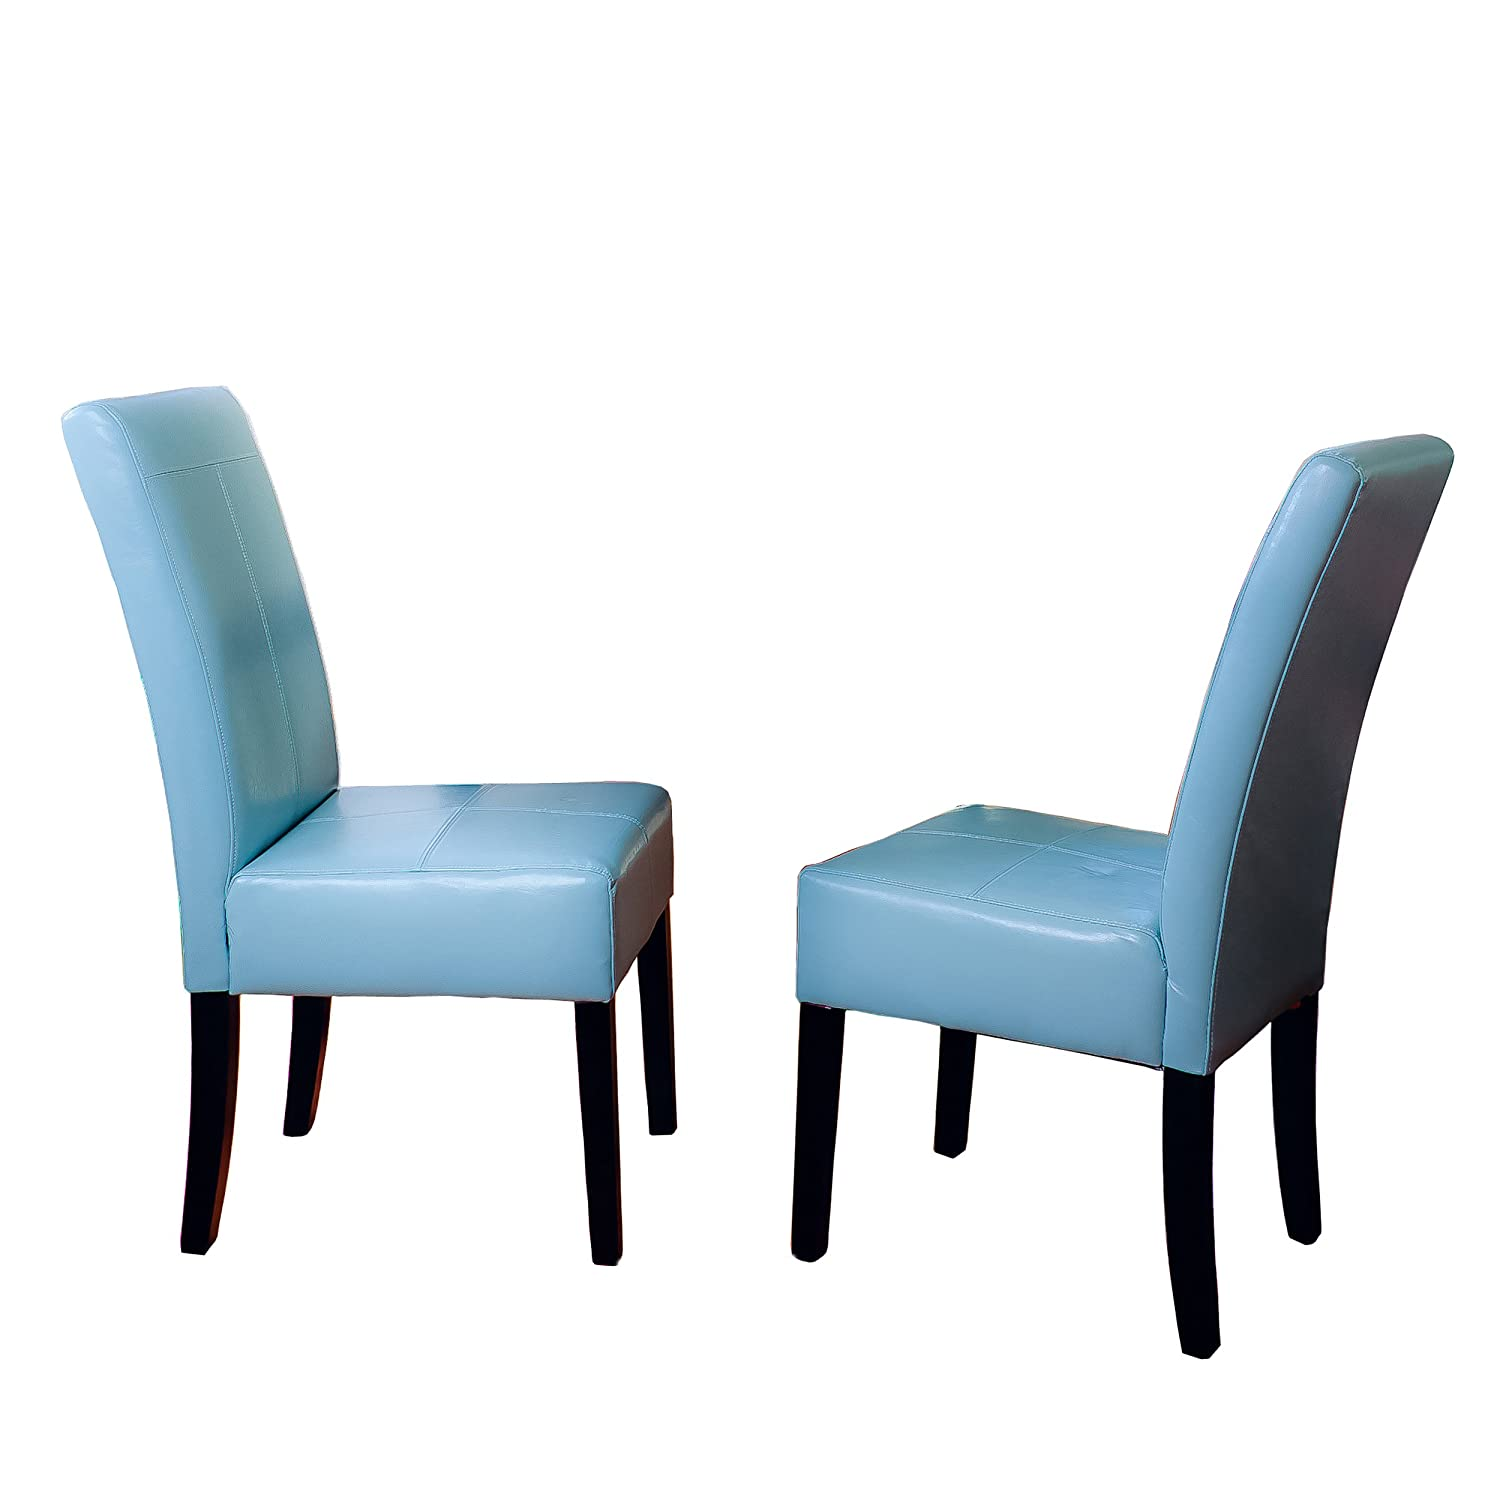 teal dining room accessories. amazon.com - best selling teal blue t-stitch bonded leather dining chair, 2-pack chairs room accessories